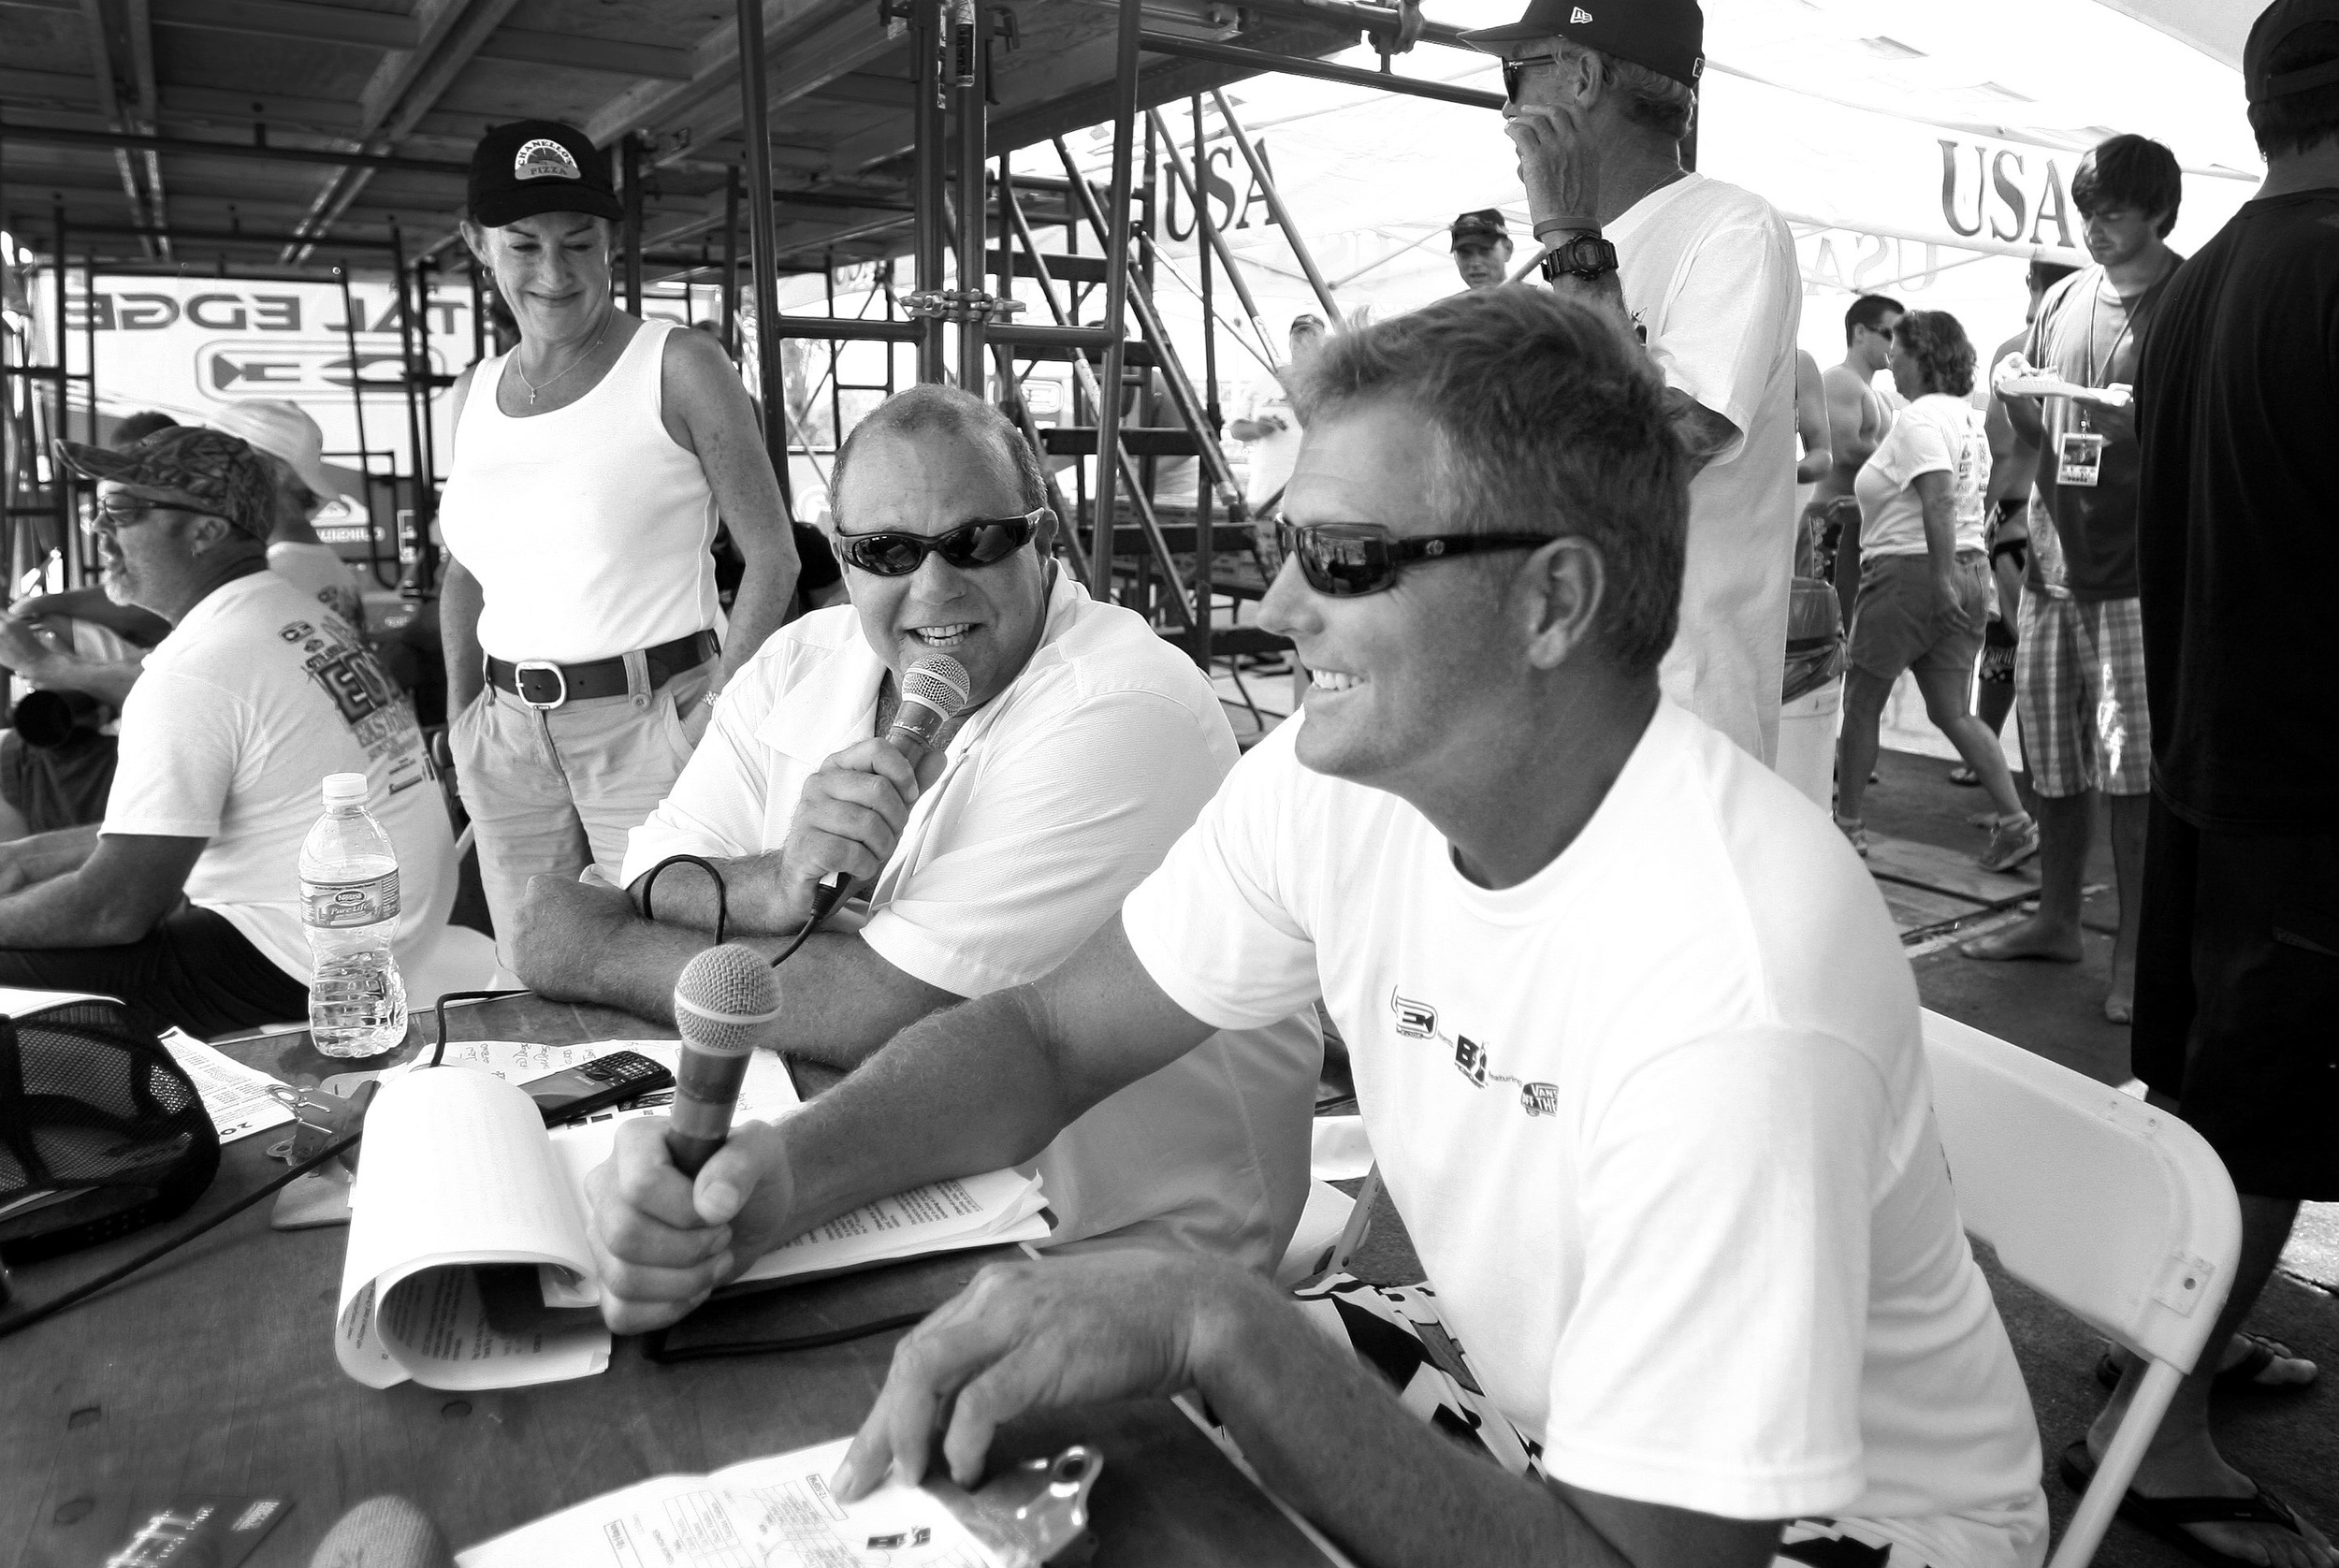 2009, Paul West and Wes Laine working the crowd during the ECSC.